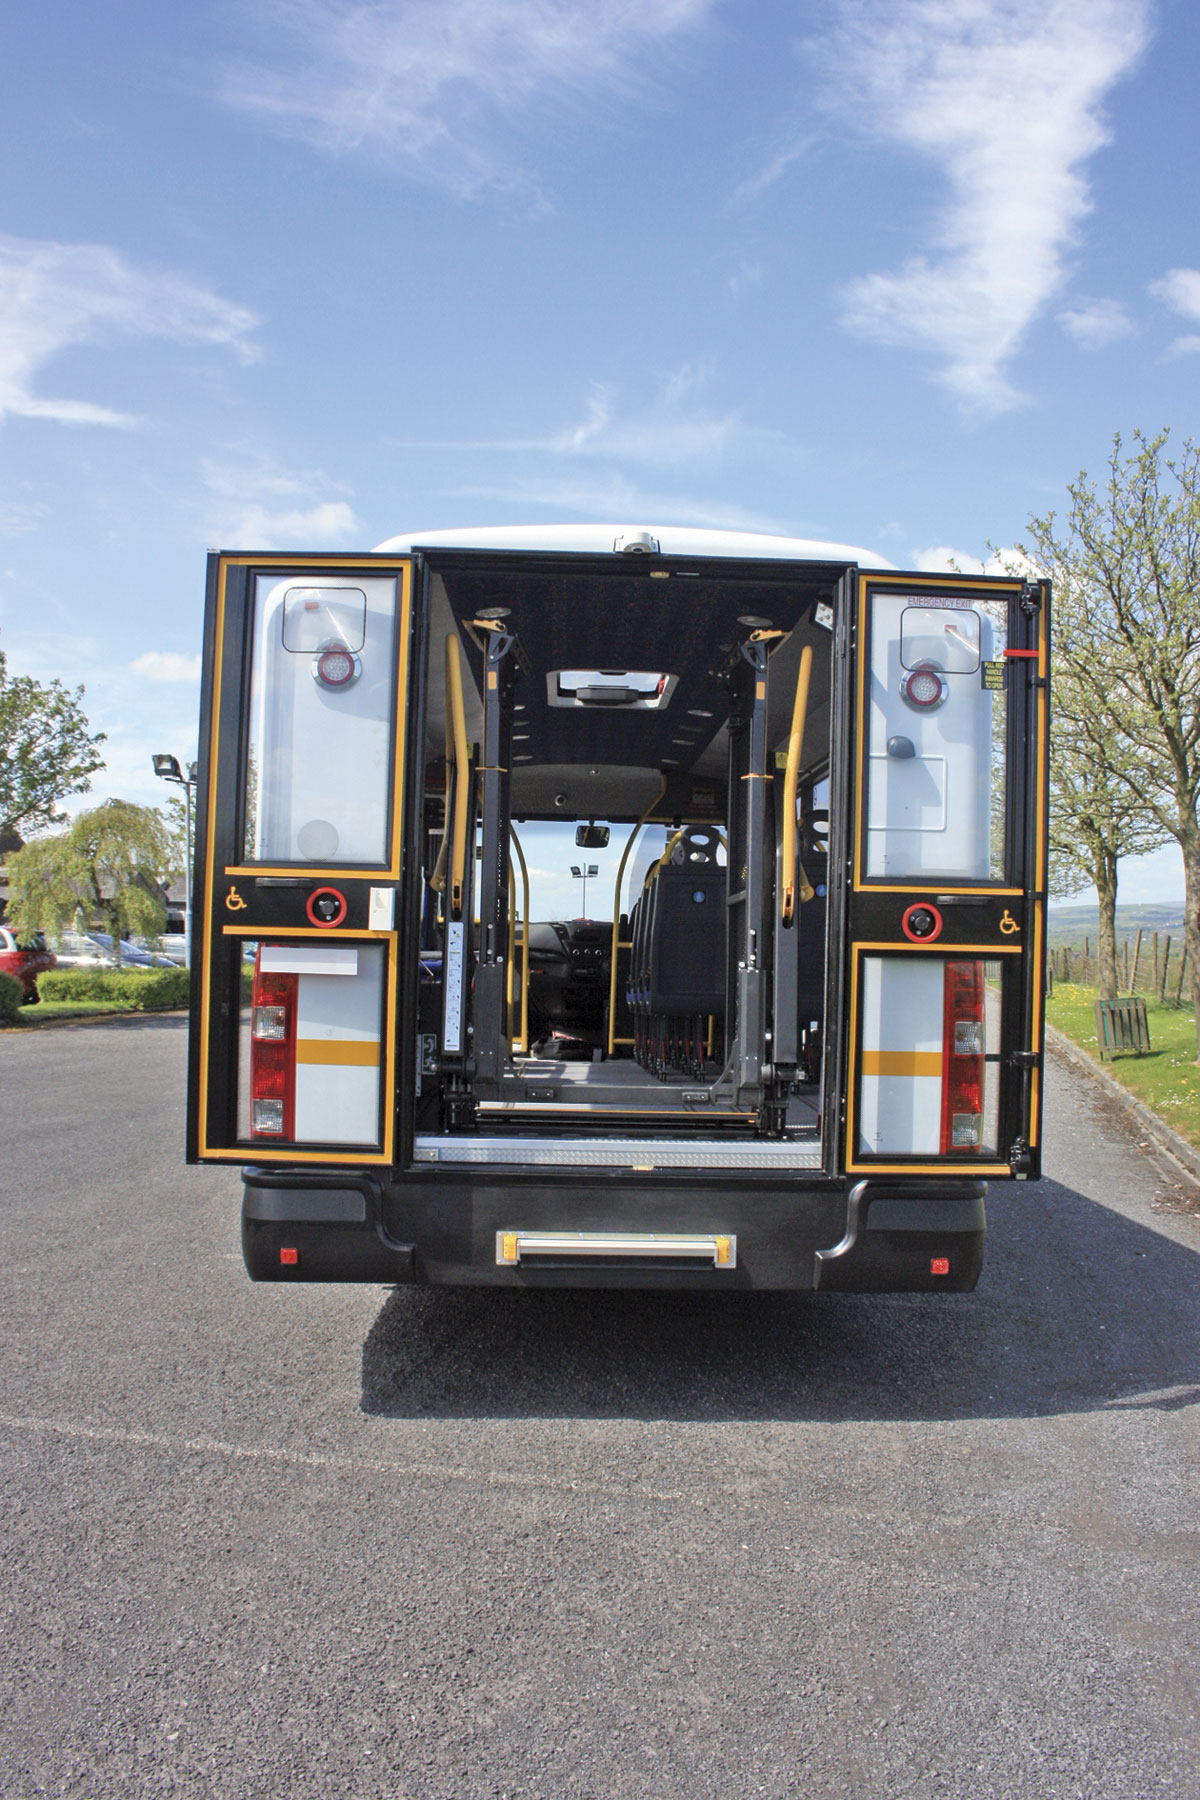 The rear of the Aberdeenshire vehicle with Ratcliff in-board lift. Note the additional manual step for use in emergencies